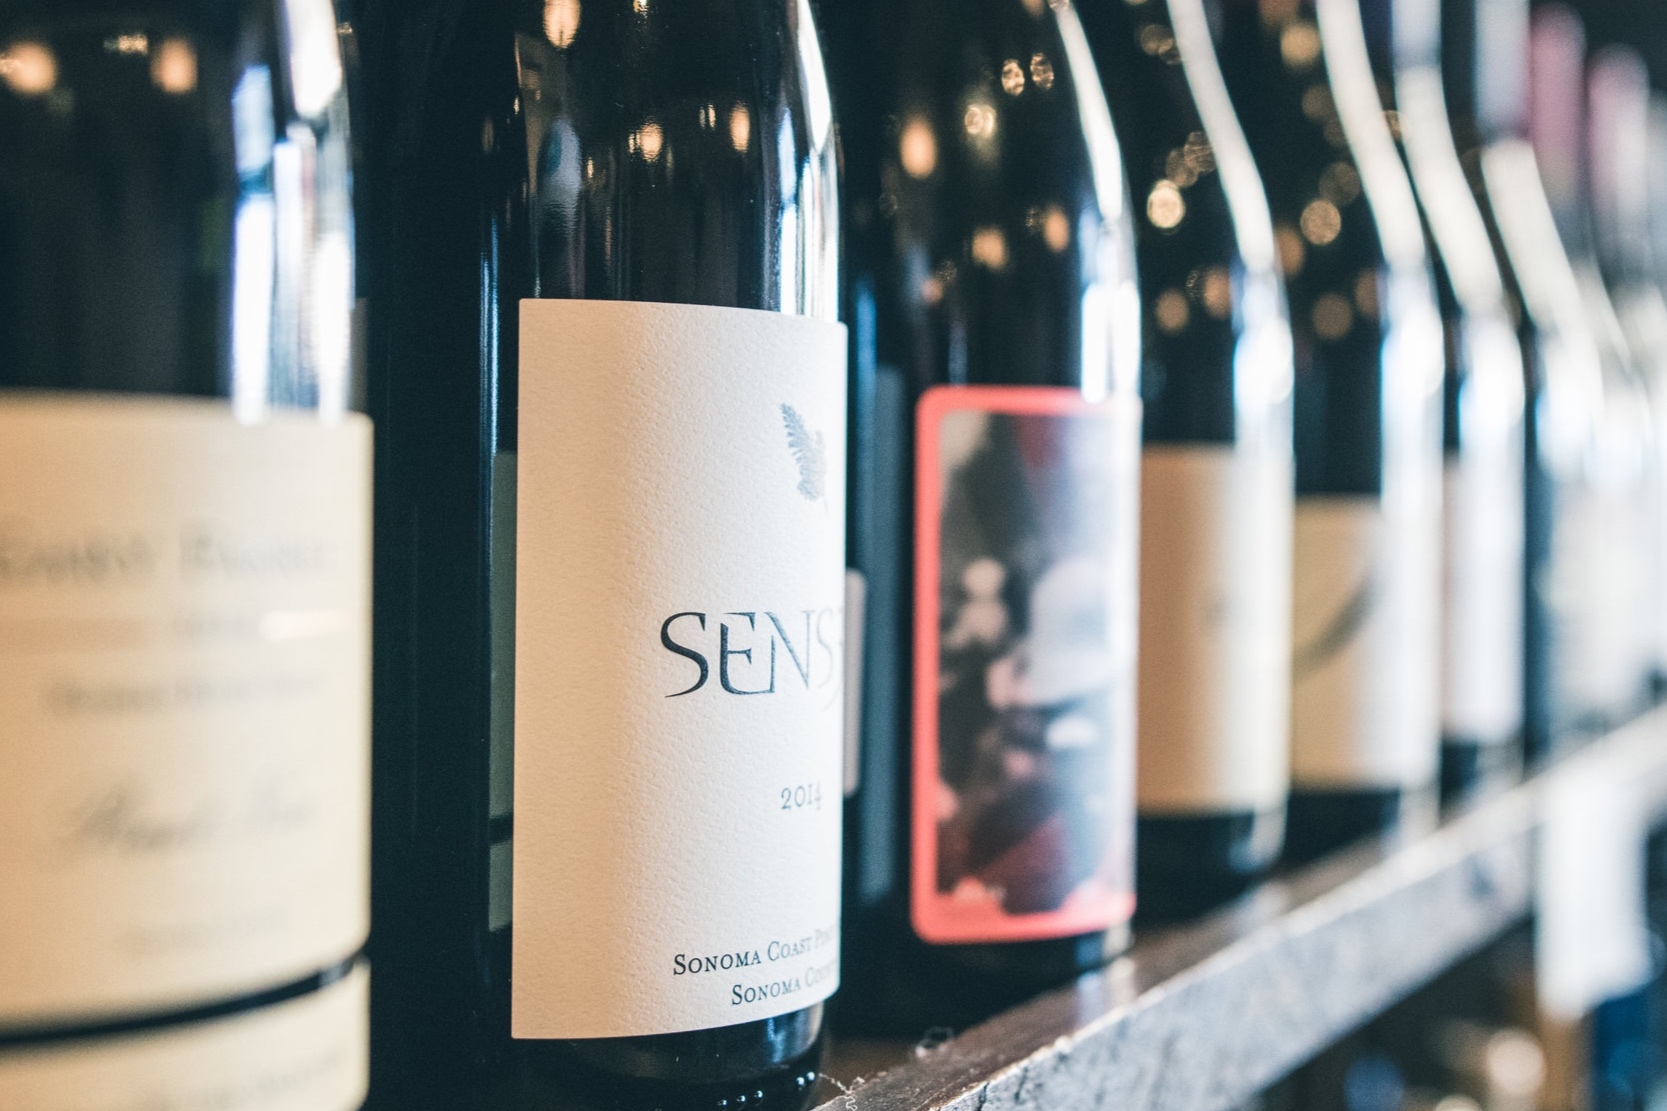 Top Wines in London England